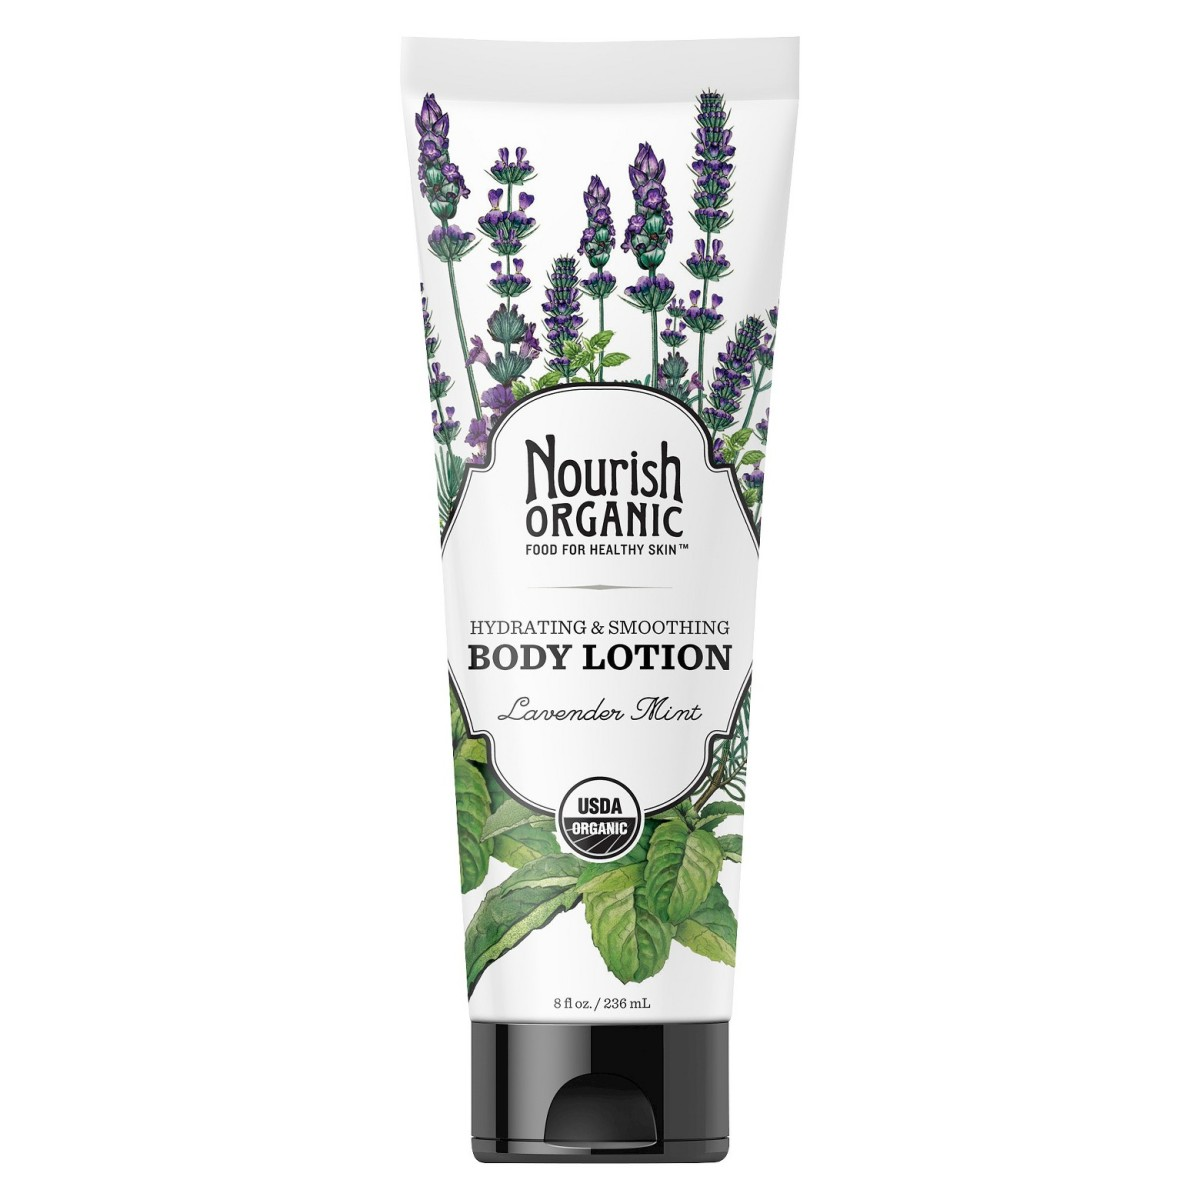 Nourish Organic Hydrating & Smooth Lavender Mint Body Lotion